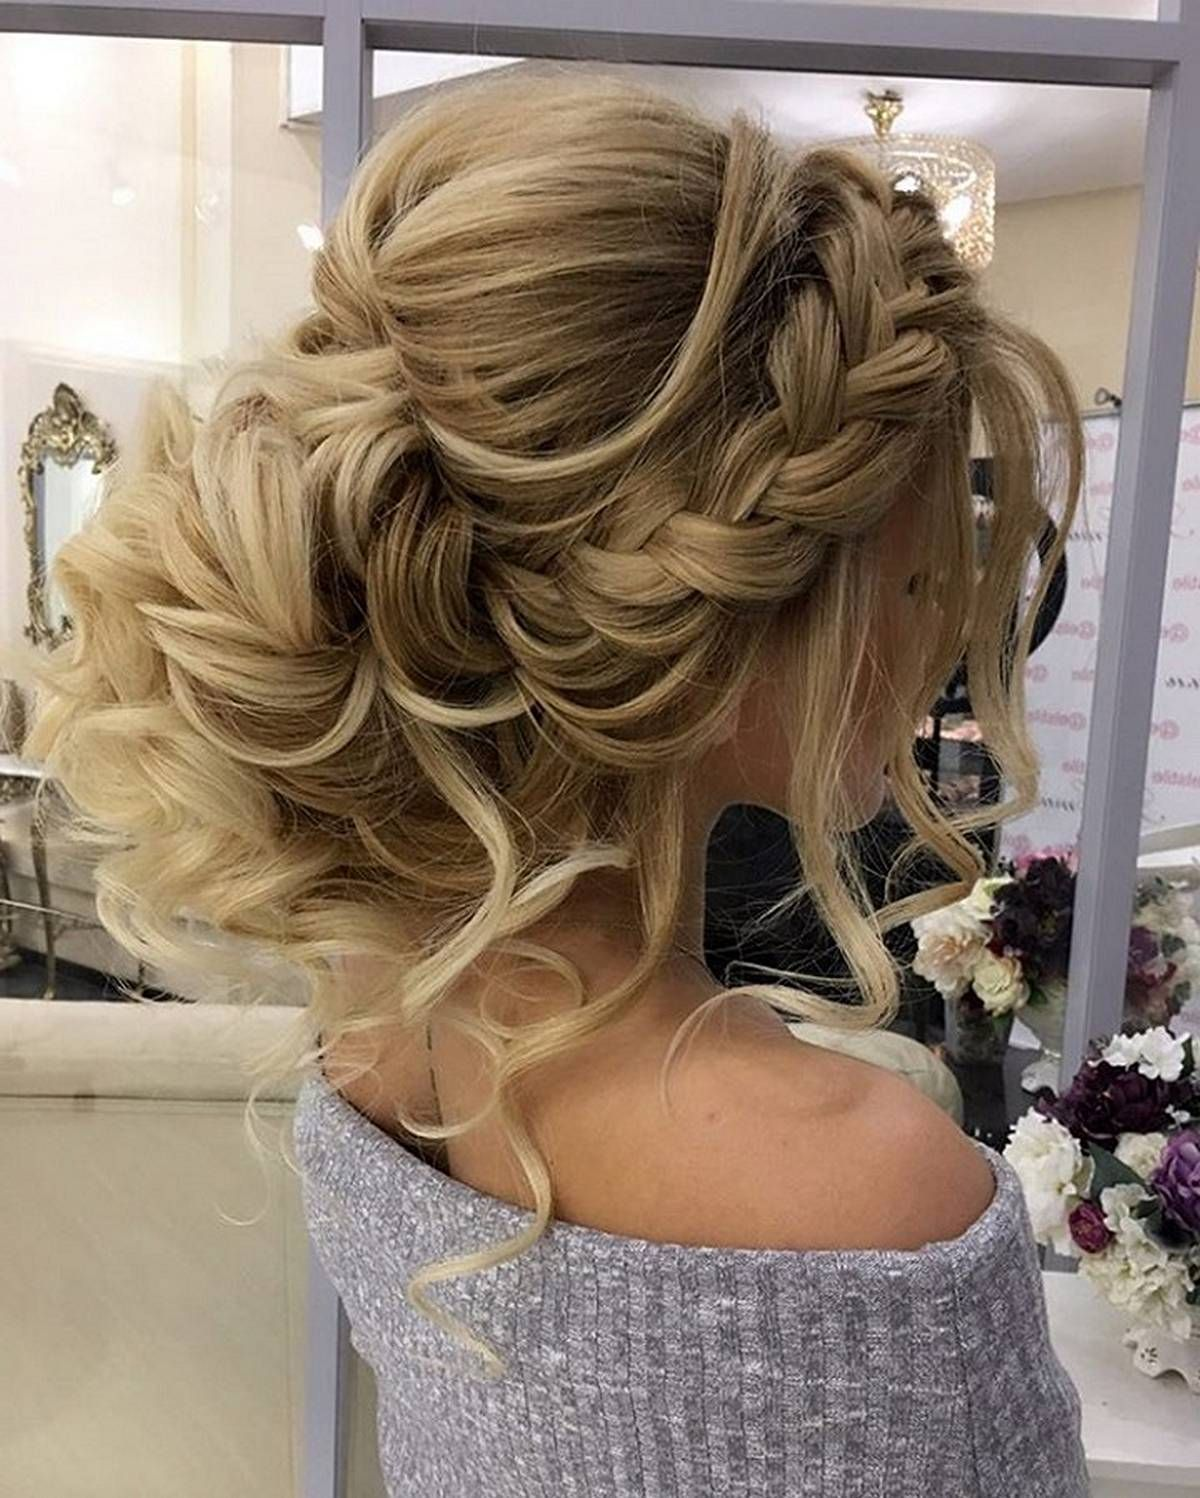 Hairstyles Diy And Tutorial For All Hair Lengths 079 Hair And